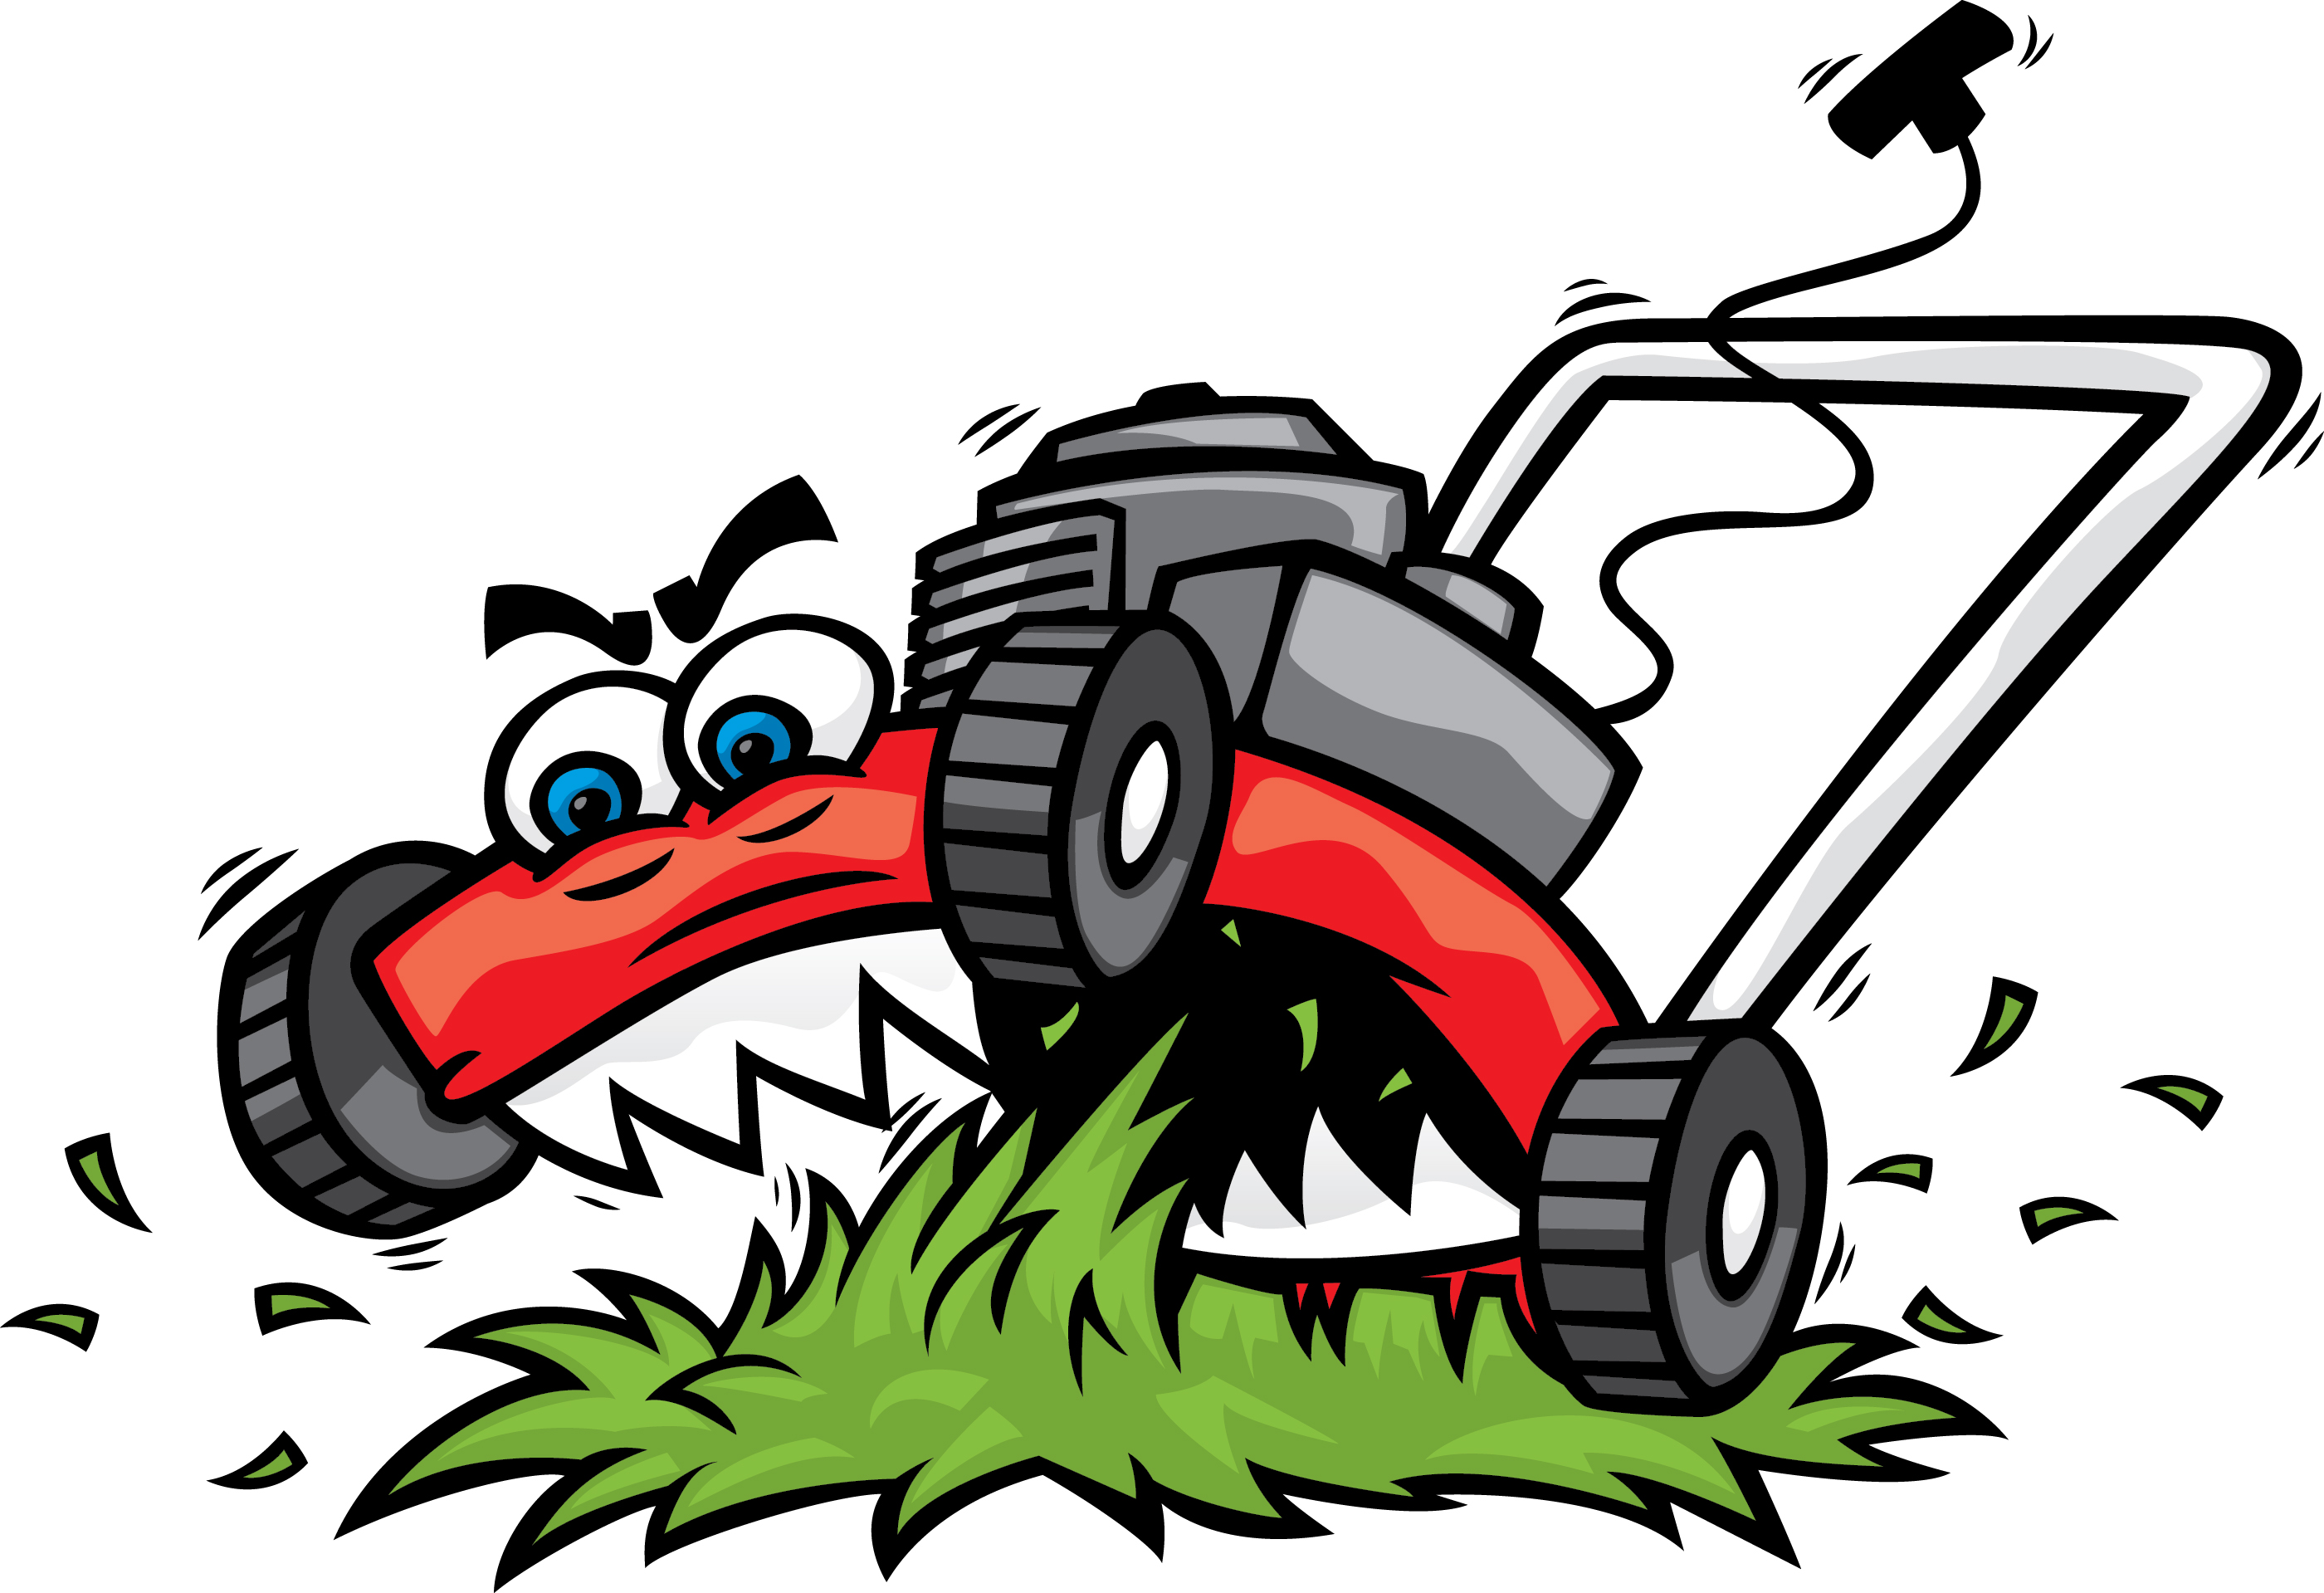 lawn care clipart free download best lawn care clipart lawn mower clipart cartoon lawn mower clip art free